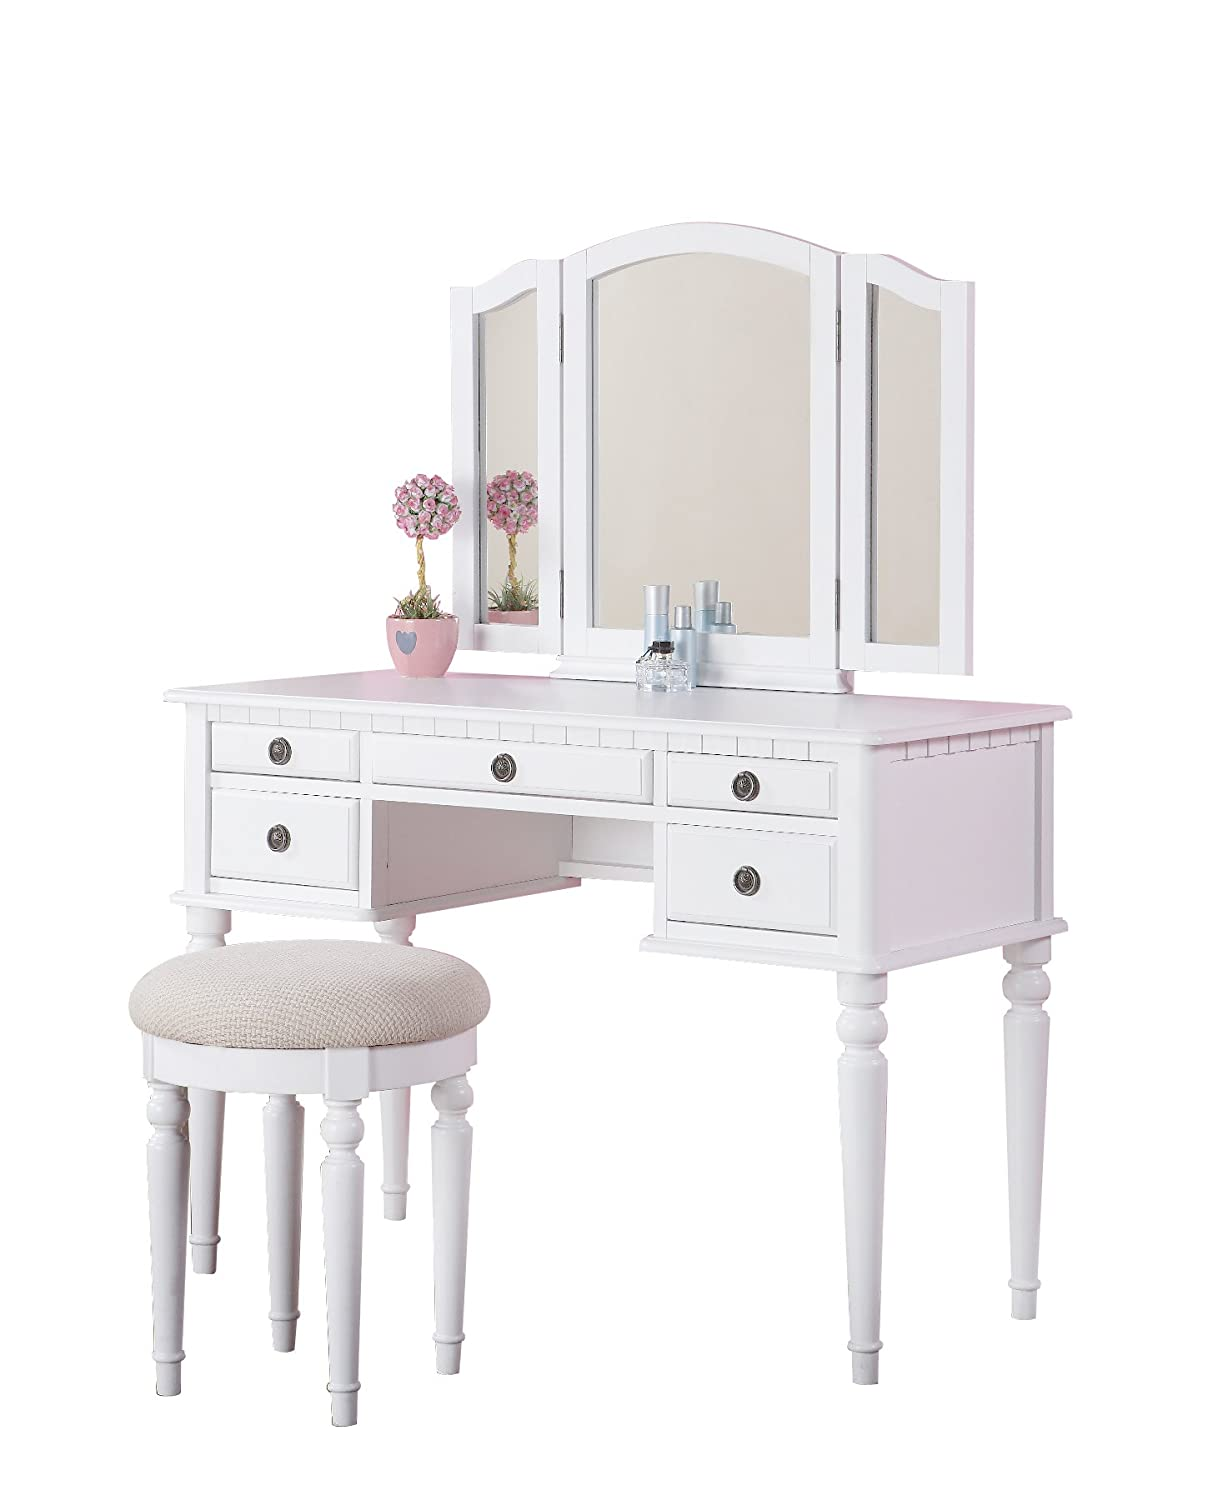 Vanity And Stool Sets White Make Up Vanity Table Sets With Mirror And Stool